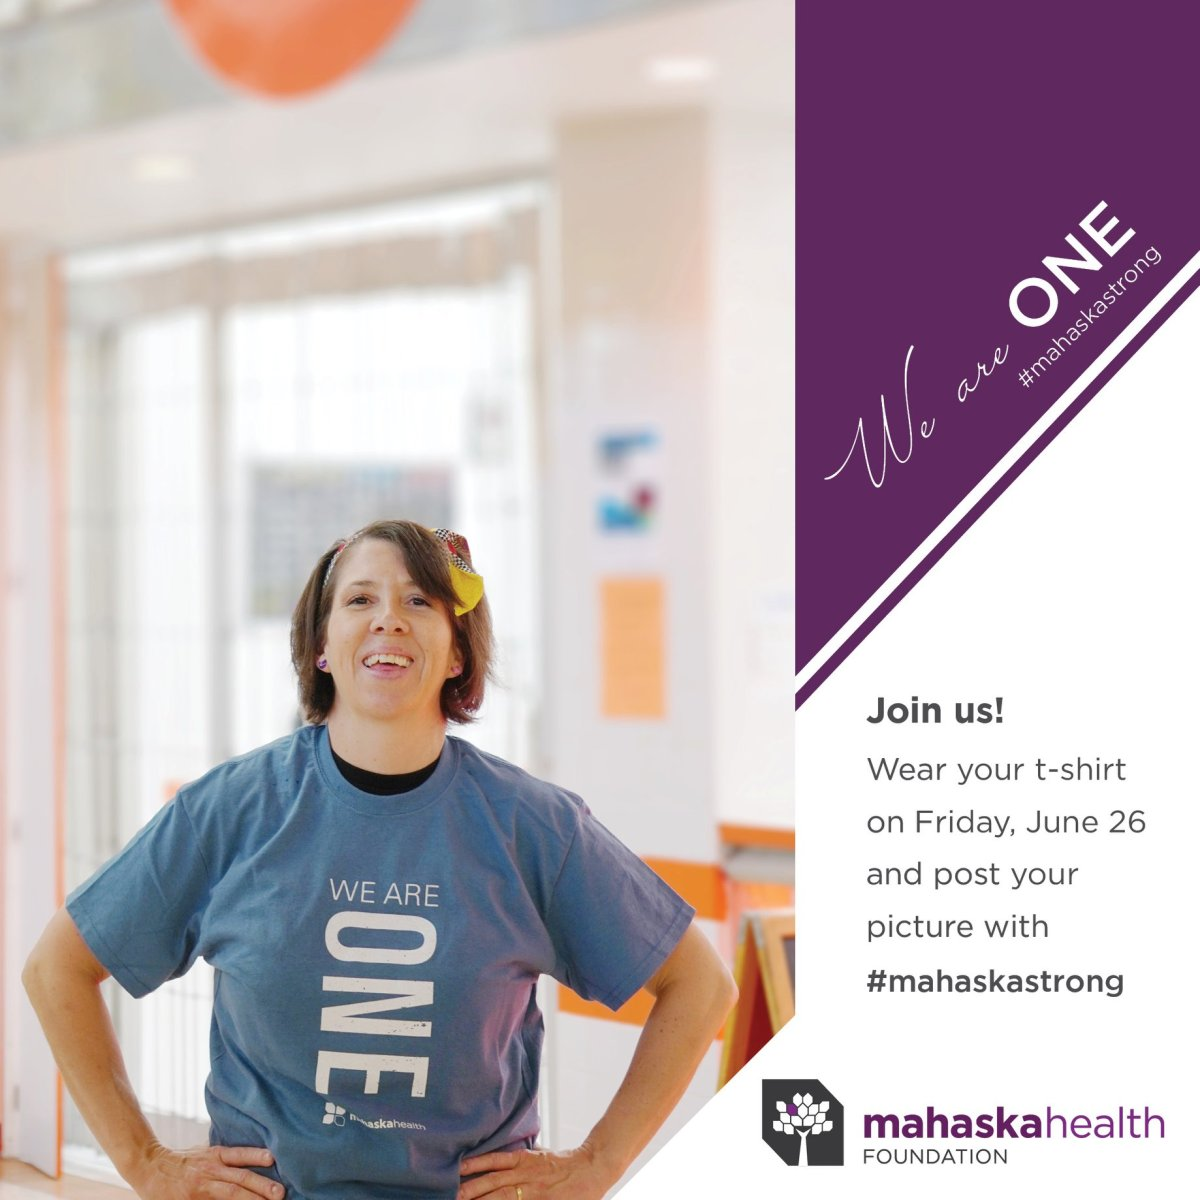 We Are One Mahaska Strong t-shirt